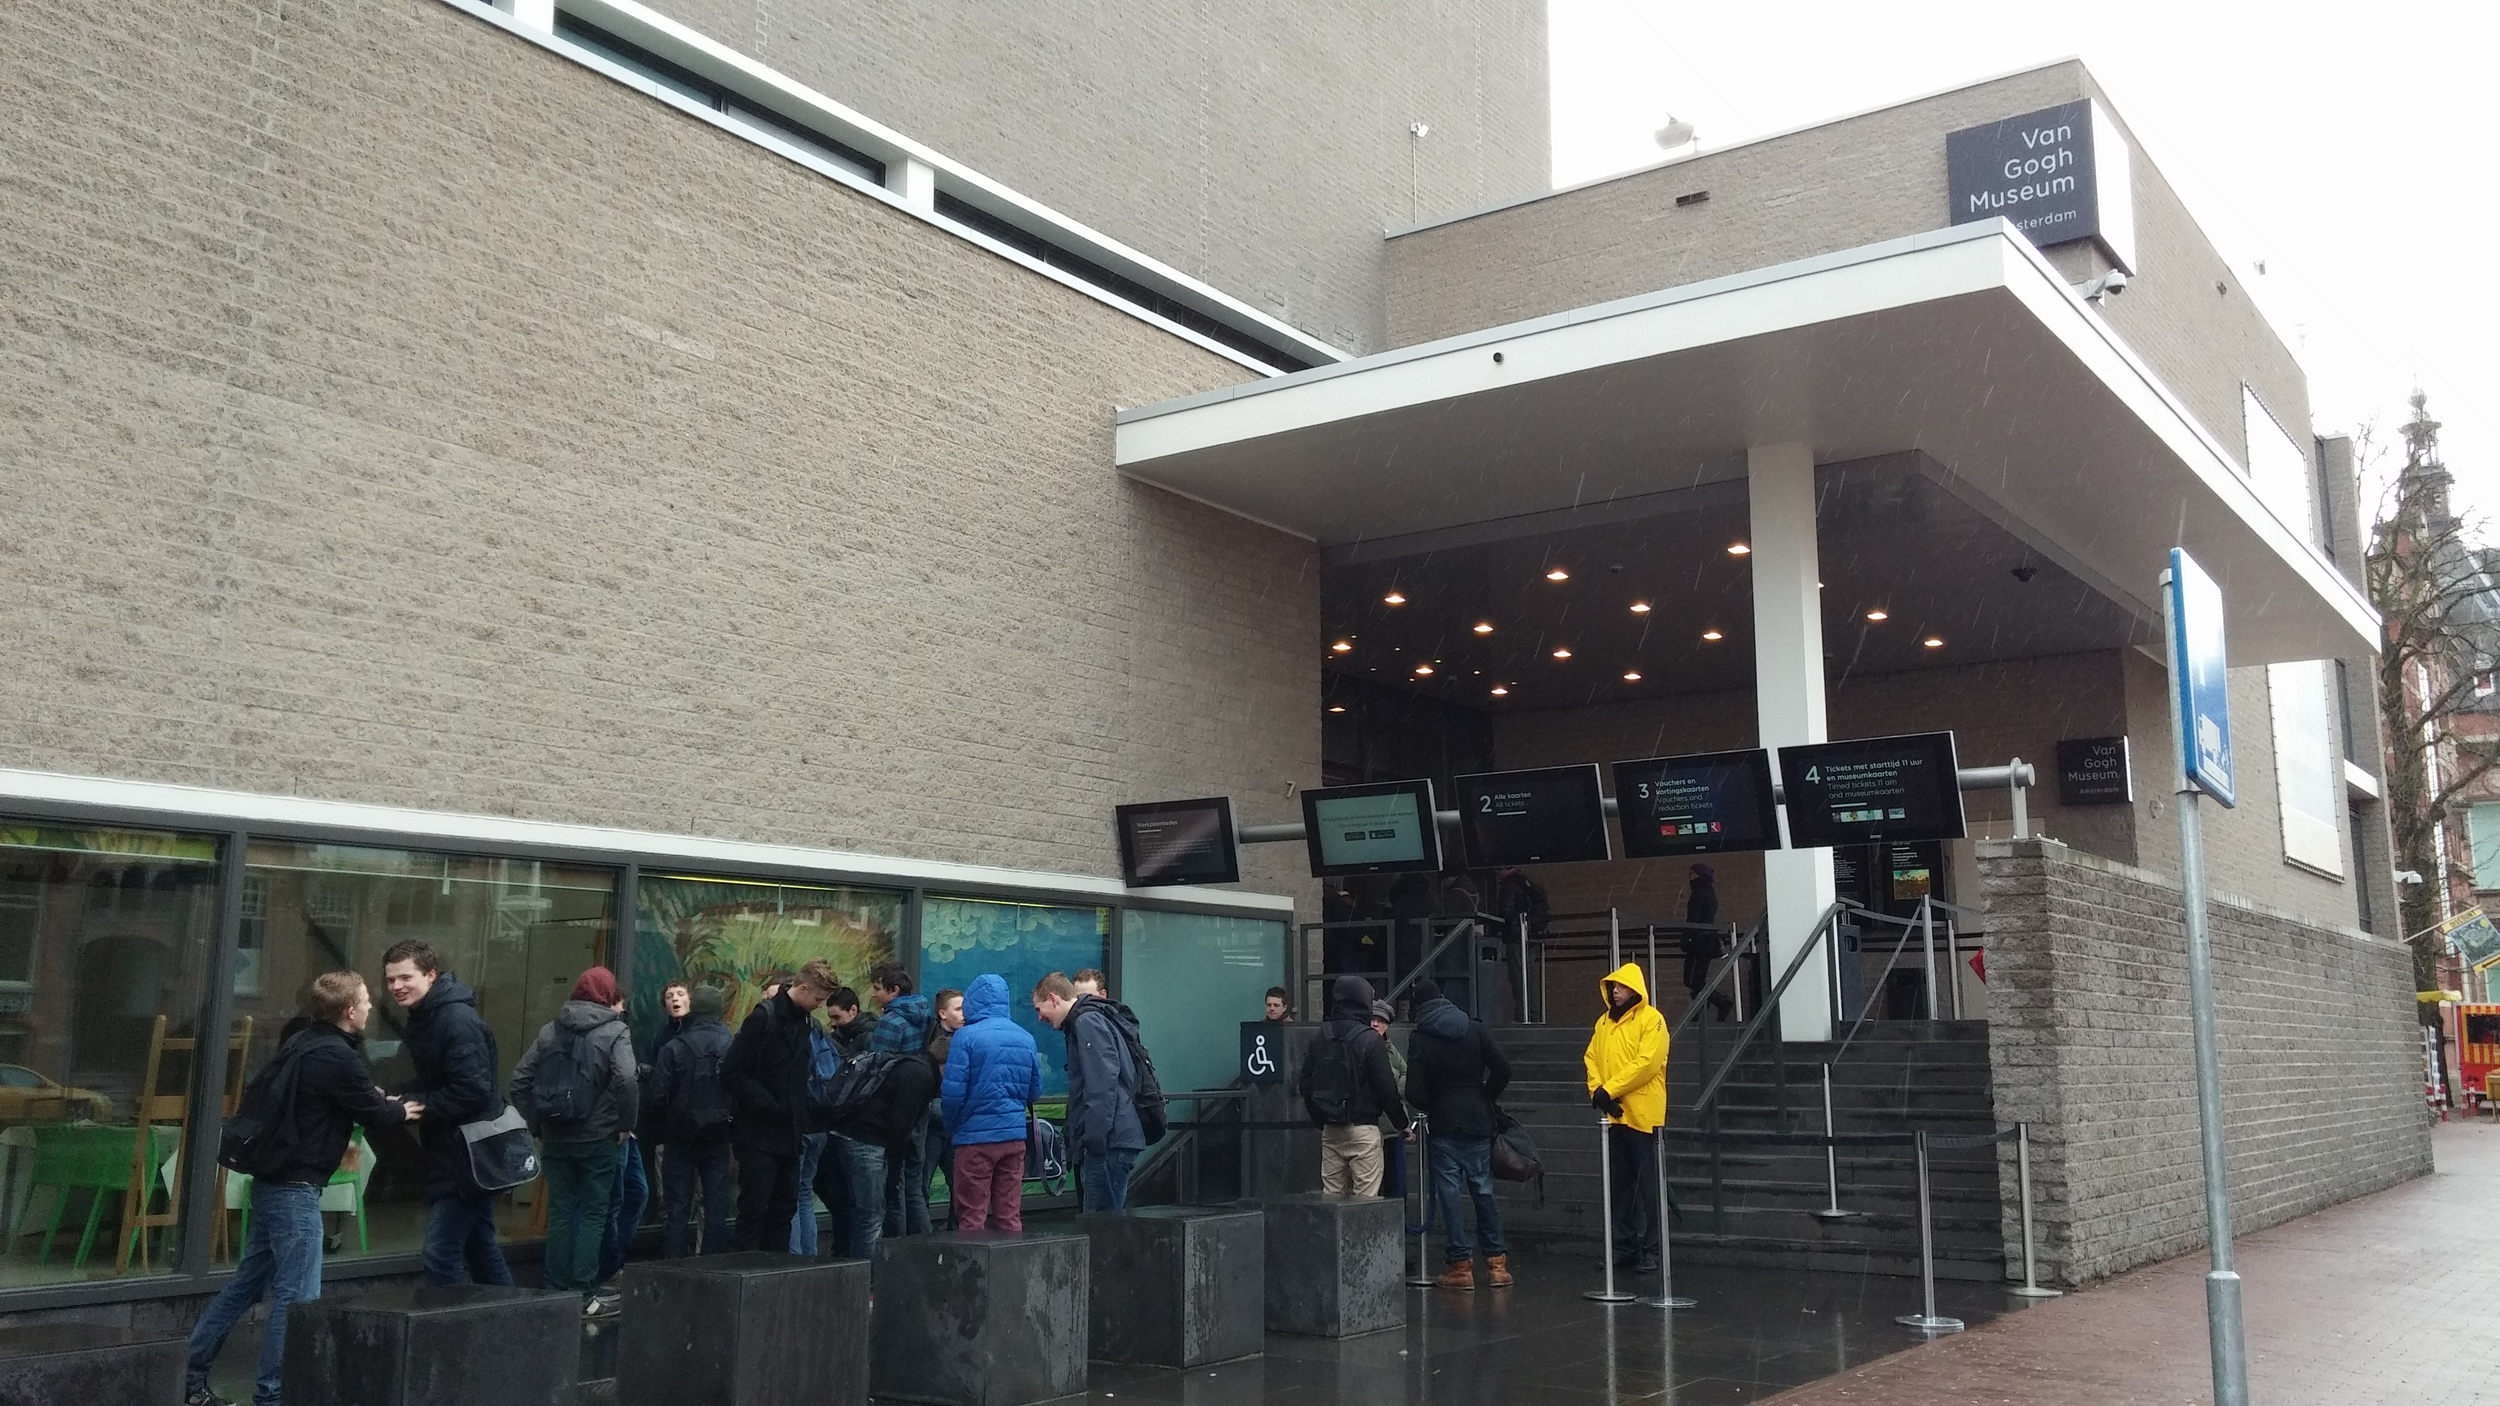 The Van Gogh Museum in the rain. I wasn't allowed to take pictures inside this museum or the Anne Frank House.